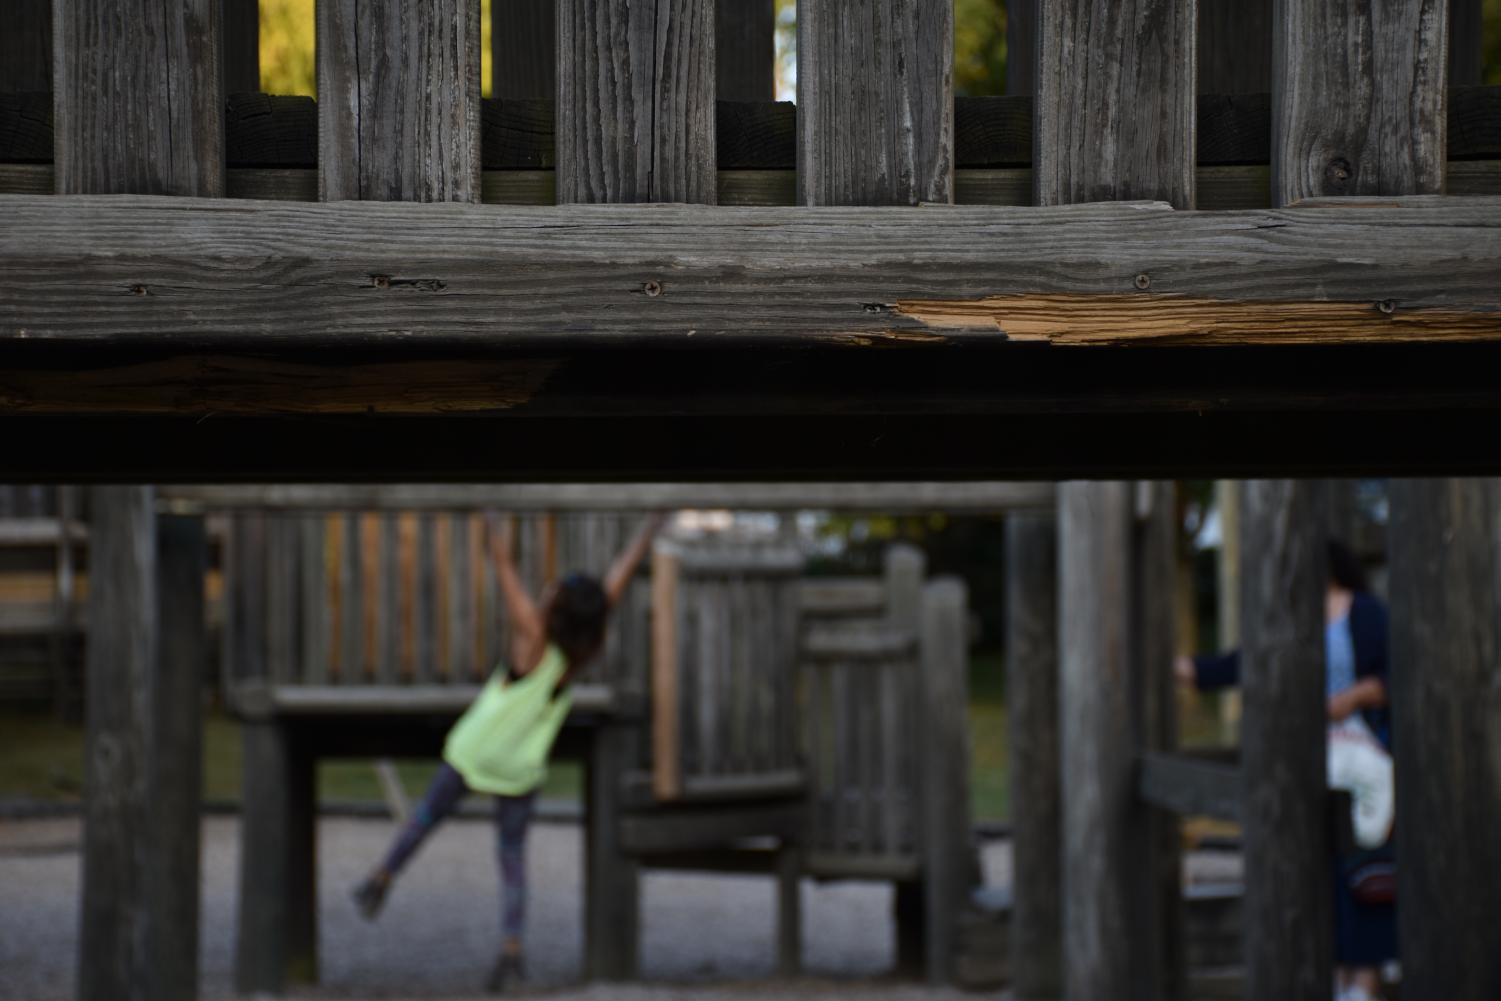 A damaged plank of wood is exposed to the elements as kids play on the monkey bars in the background.